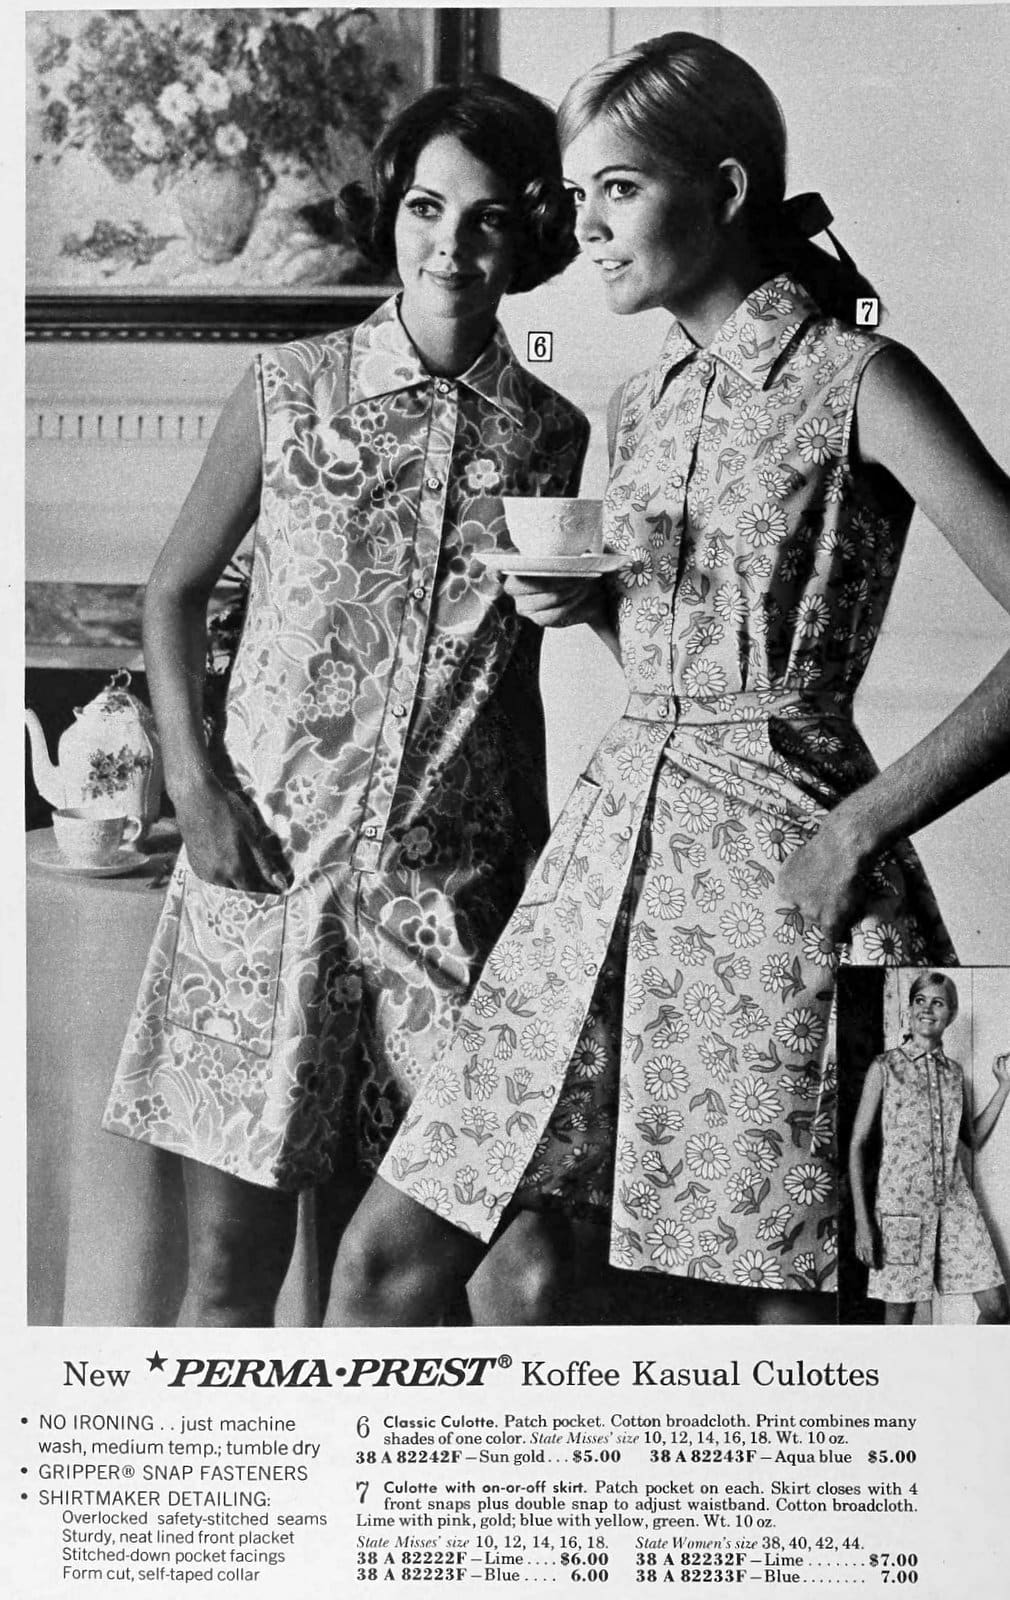 Casual culottes for women (1969)